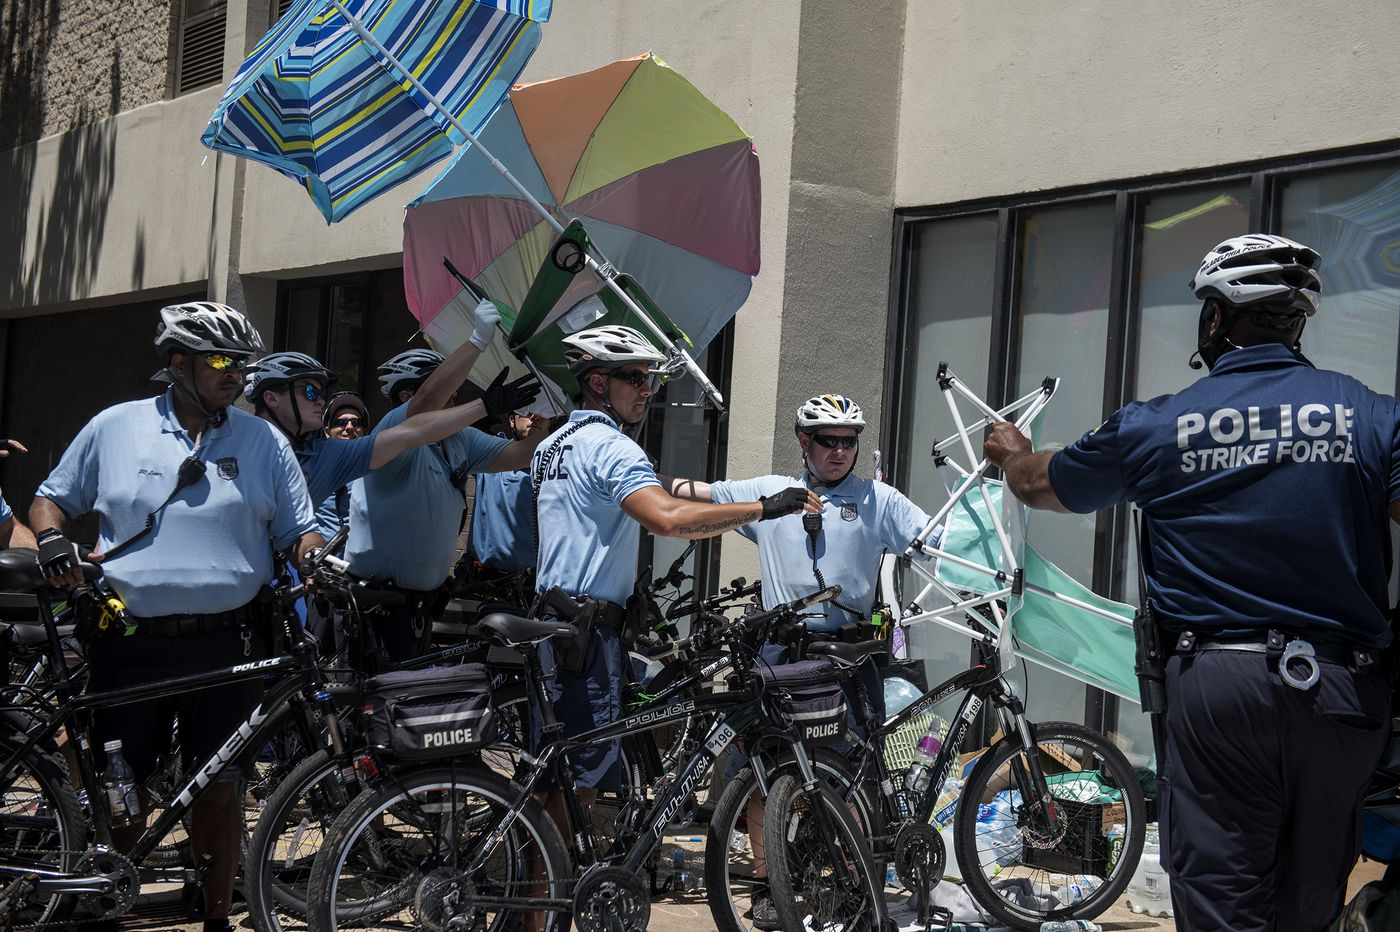 Watchdog group suggests some new tactics for Philly Police after 'Occupy ICE' protest